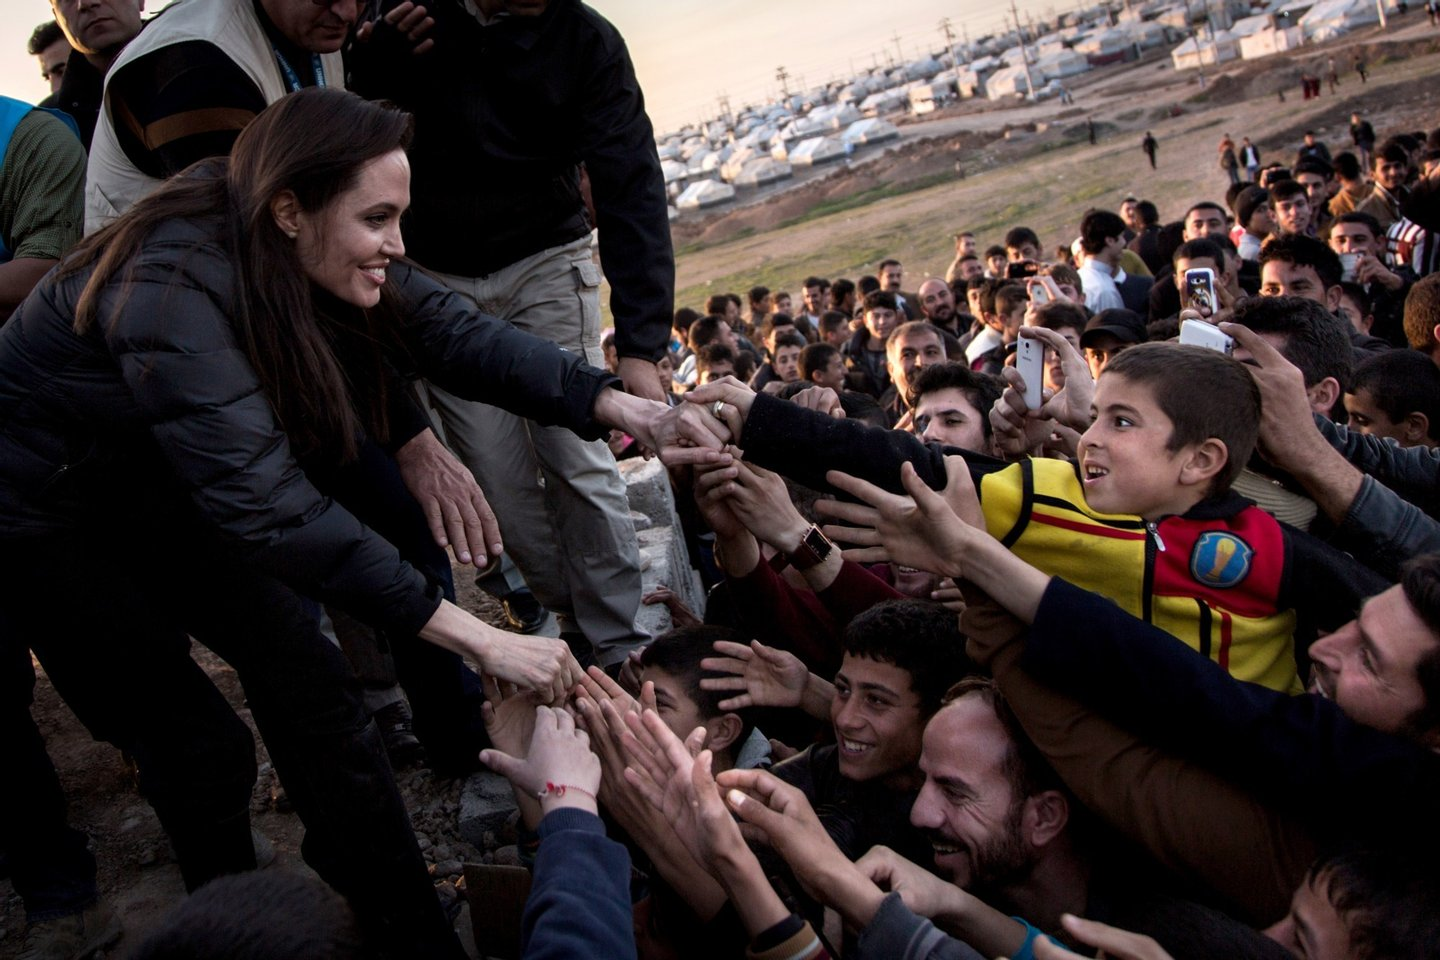 KHANKE, IRAQ - JANUARY 25: In this handout image provided by UNHCR, UNHCR Special Envoy Angelina Jolie meets members of the Yazidi minority in Khanke IDP Camp on January 25, 2015 in Khanke, Iraq. Angelina Jolie was visiting Syrian refugees and displaced Iraqi citizens in the Kurdistan Region of Iraq to offer support to 3.3 million displaced people in the country and highlight their dire needs. (Photo by Andrew McConnell/UNHCR via Getty Images)